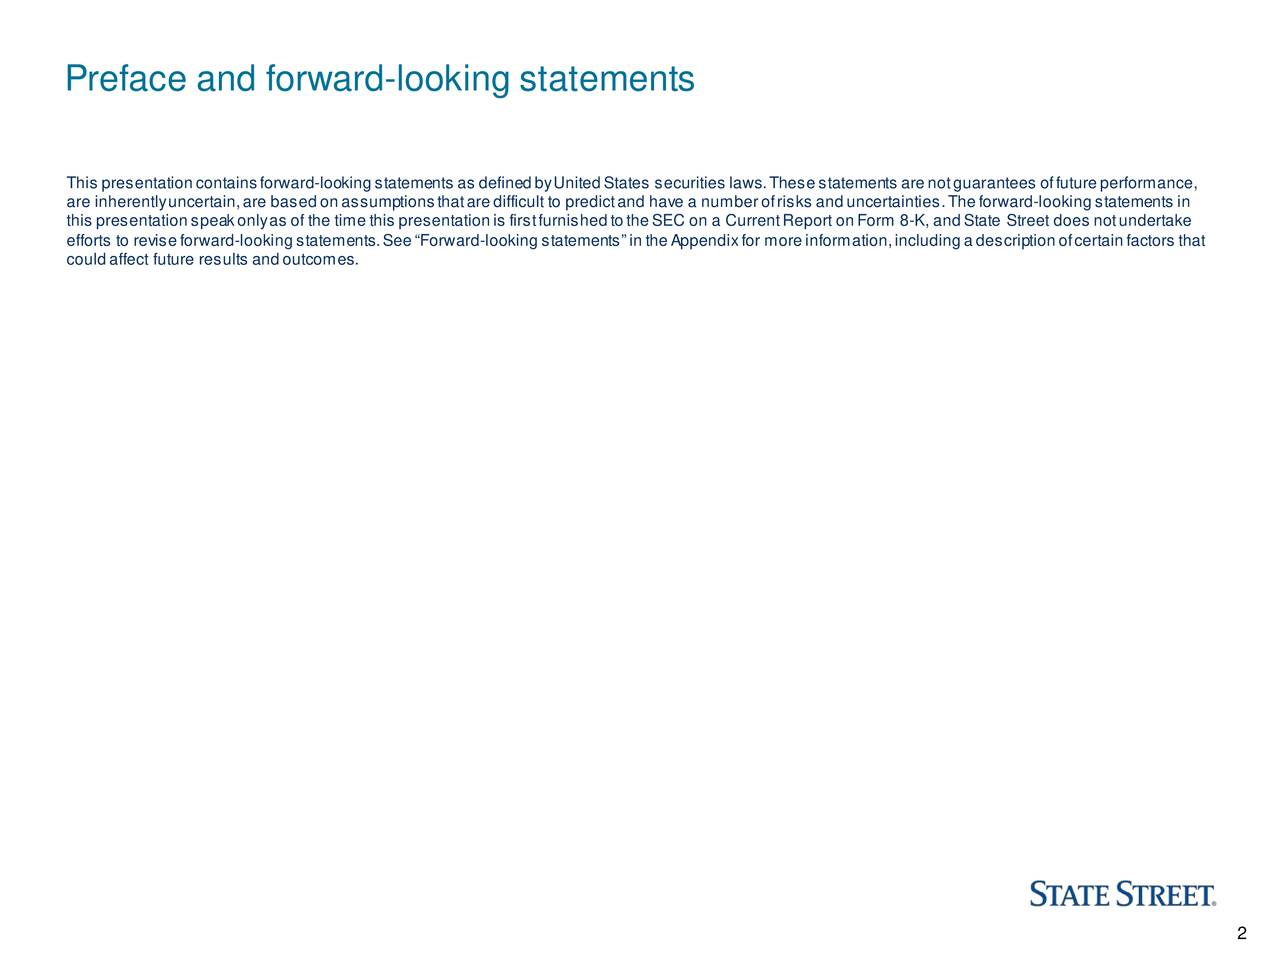 """This presentation contains forward-looking statements as defined byUnited States securities laws. These statements are not guar antees of future performance, are inherentlyuncertain, are based on assumptions that are difficult to predict and have a number of risks and uncertainties . The forward-lookingstatements in this presentation speak onlyas of the time this presentation is first furnished to the SEC on a Current Report on Form 8-K, and State Street does not undertake efforts to reviseforward-looking statements. See """"Forward-statements"""" in the Appendix for more information, including a description of certain factors that could affect future results and outcomes. 2"""